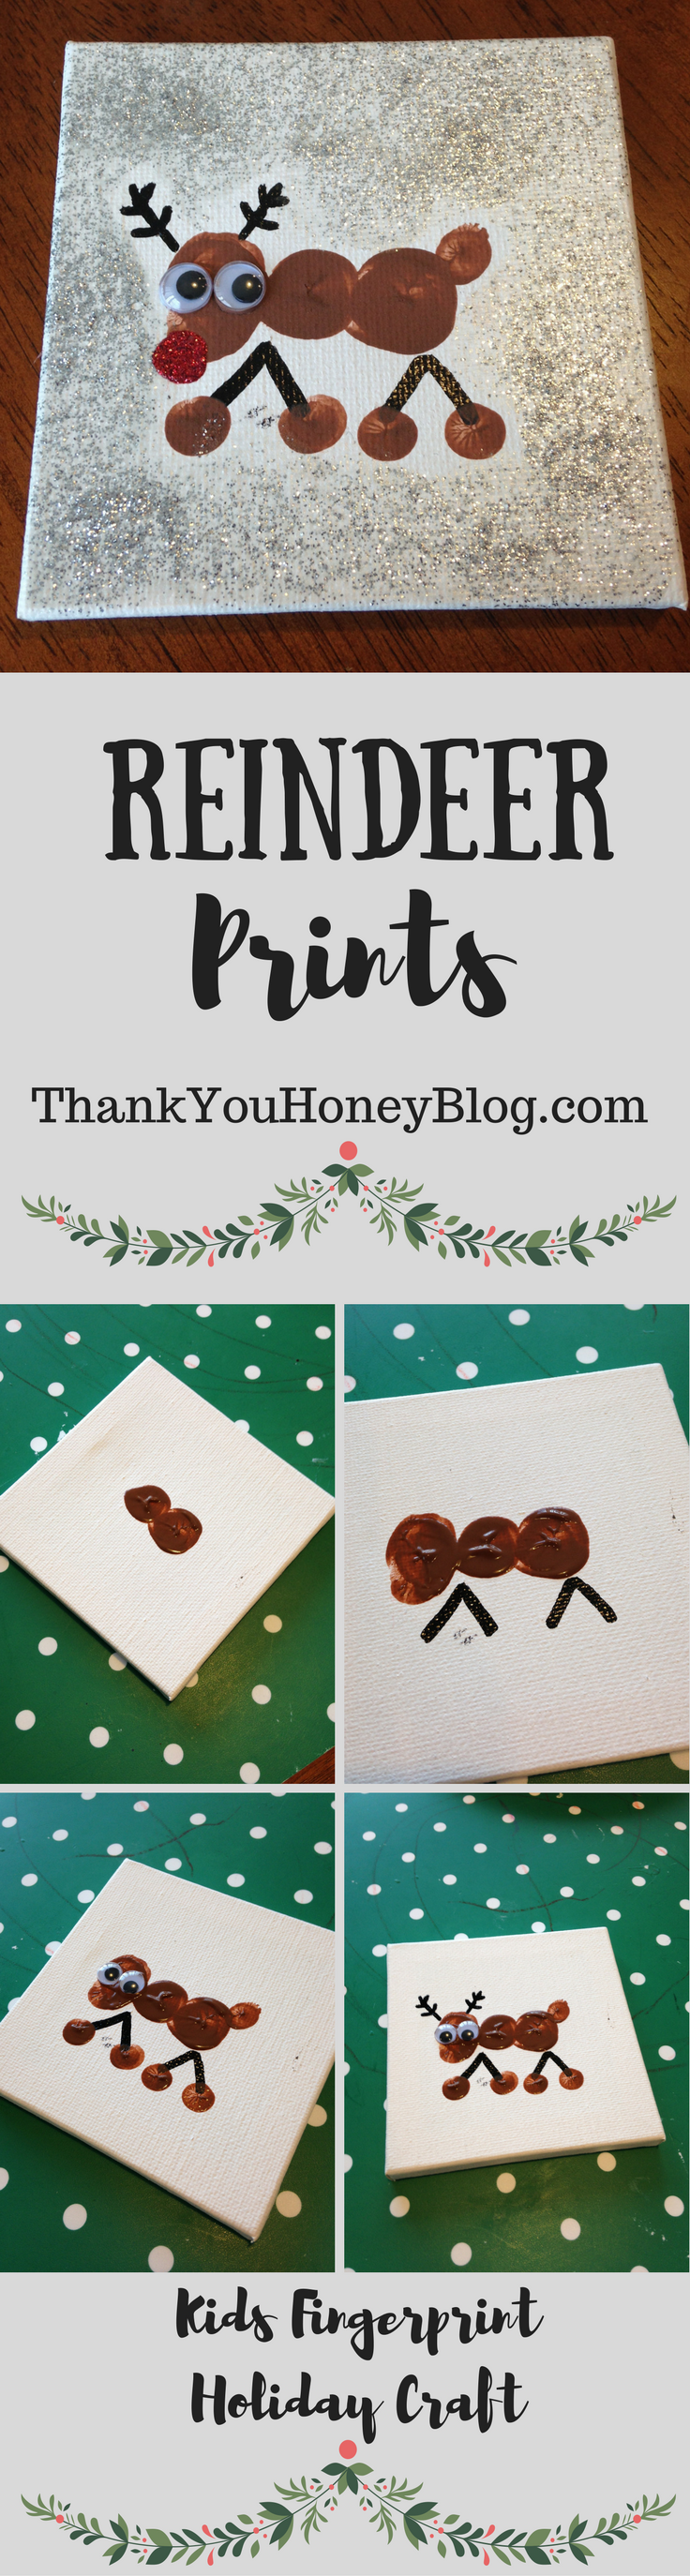 Reindeer Prints, Reindeer Prints, Kids Holiday Craft, Christmas, Ornaments, Reindeer, Easy, Can Make, Gifts, Classrooms, DIY, Children, Fingerprints, Childrens, Tutorials, Kids, Projects, http://thankyouhoneyblog.com